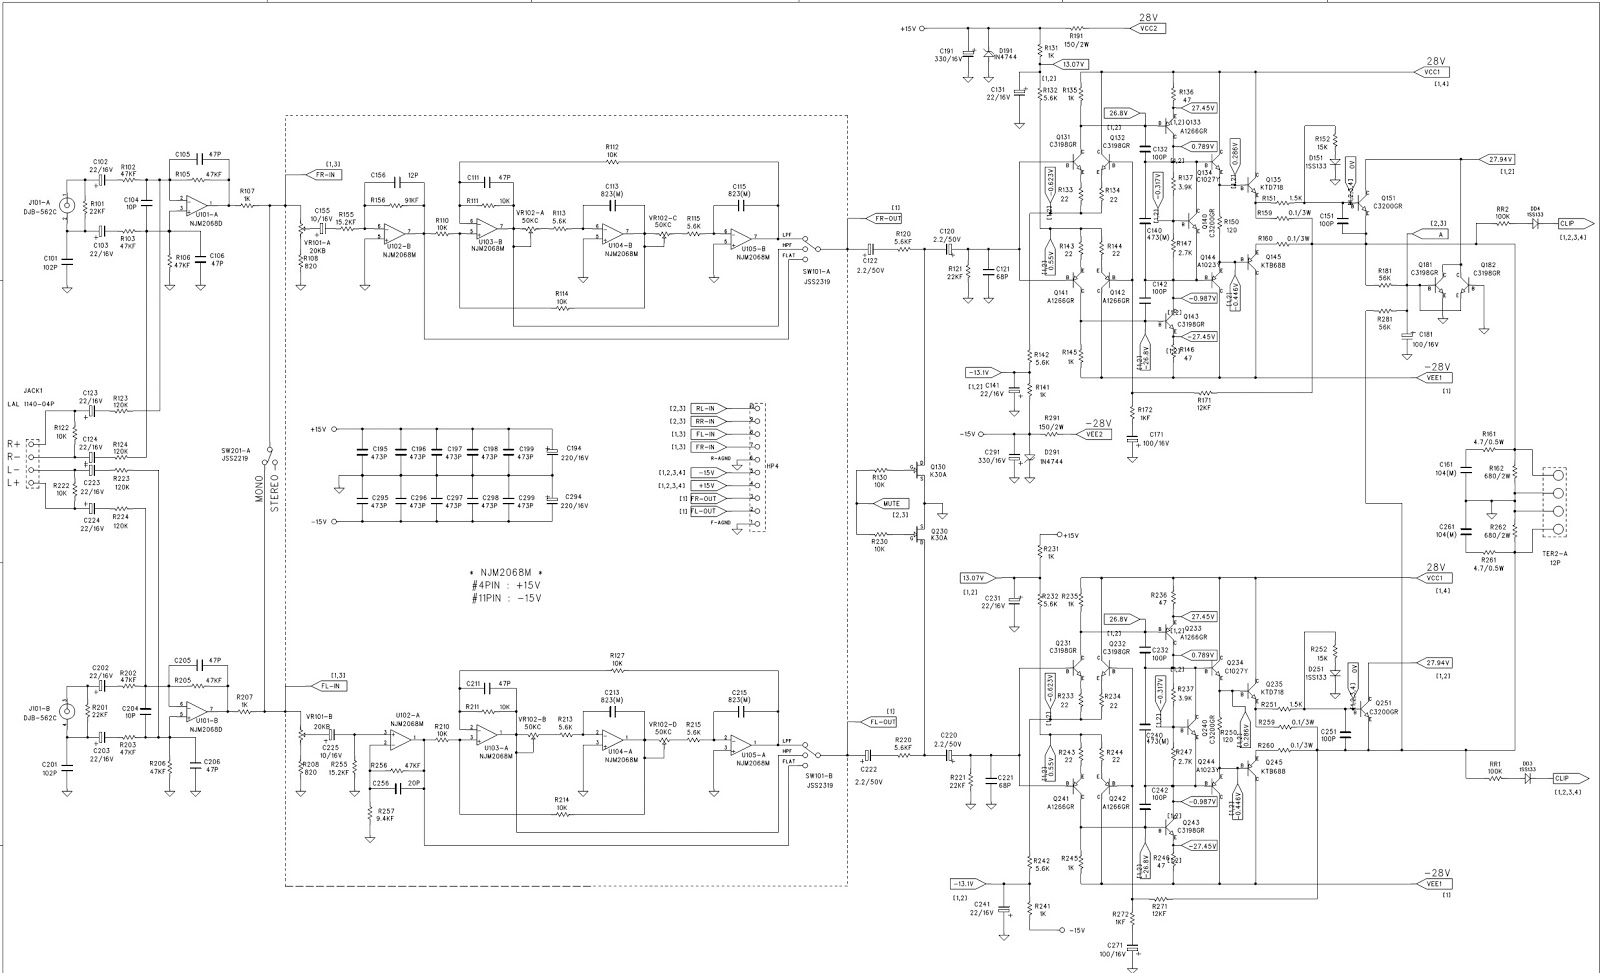 Infinity 5760a wiring diagram – circuit diagram  6 CHANNEL POWER AMPLIFIER | Electro help